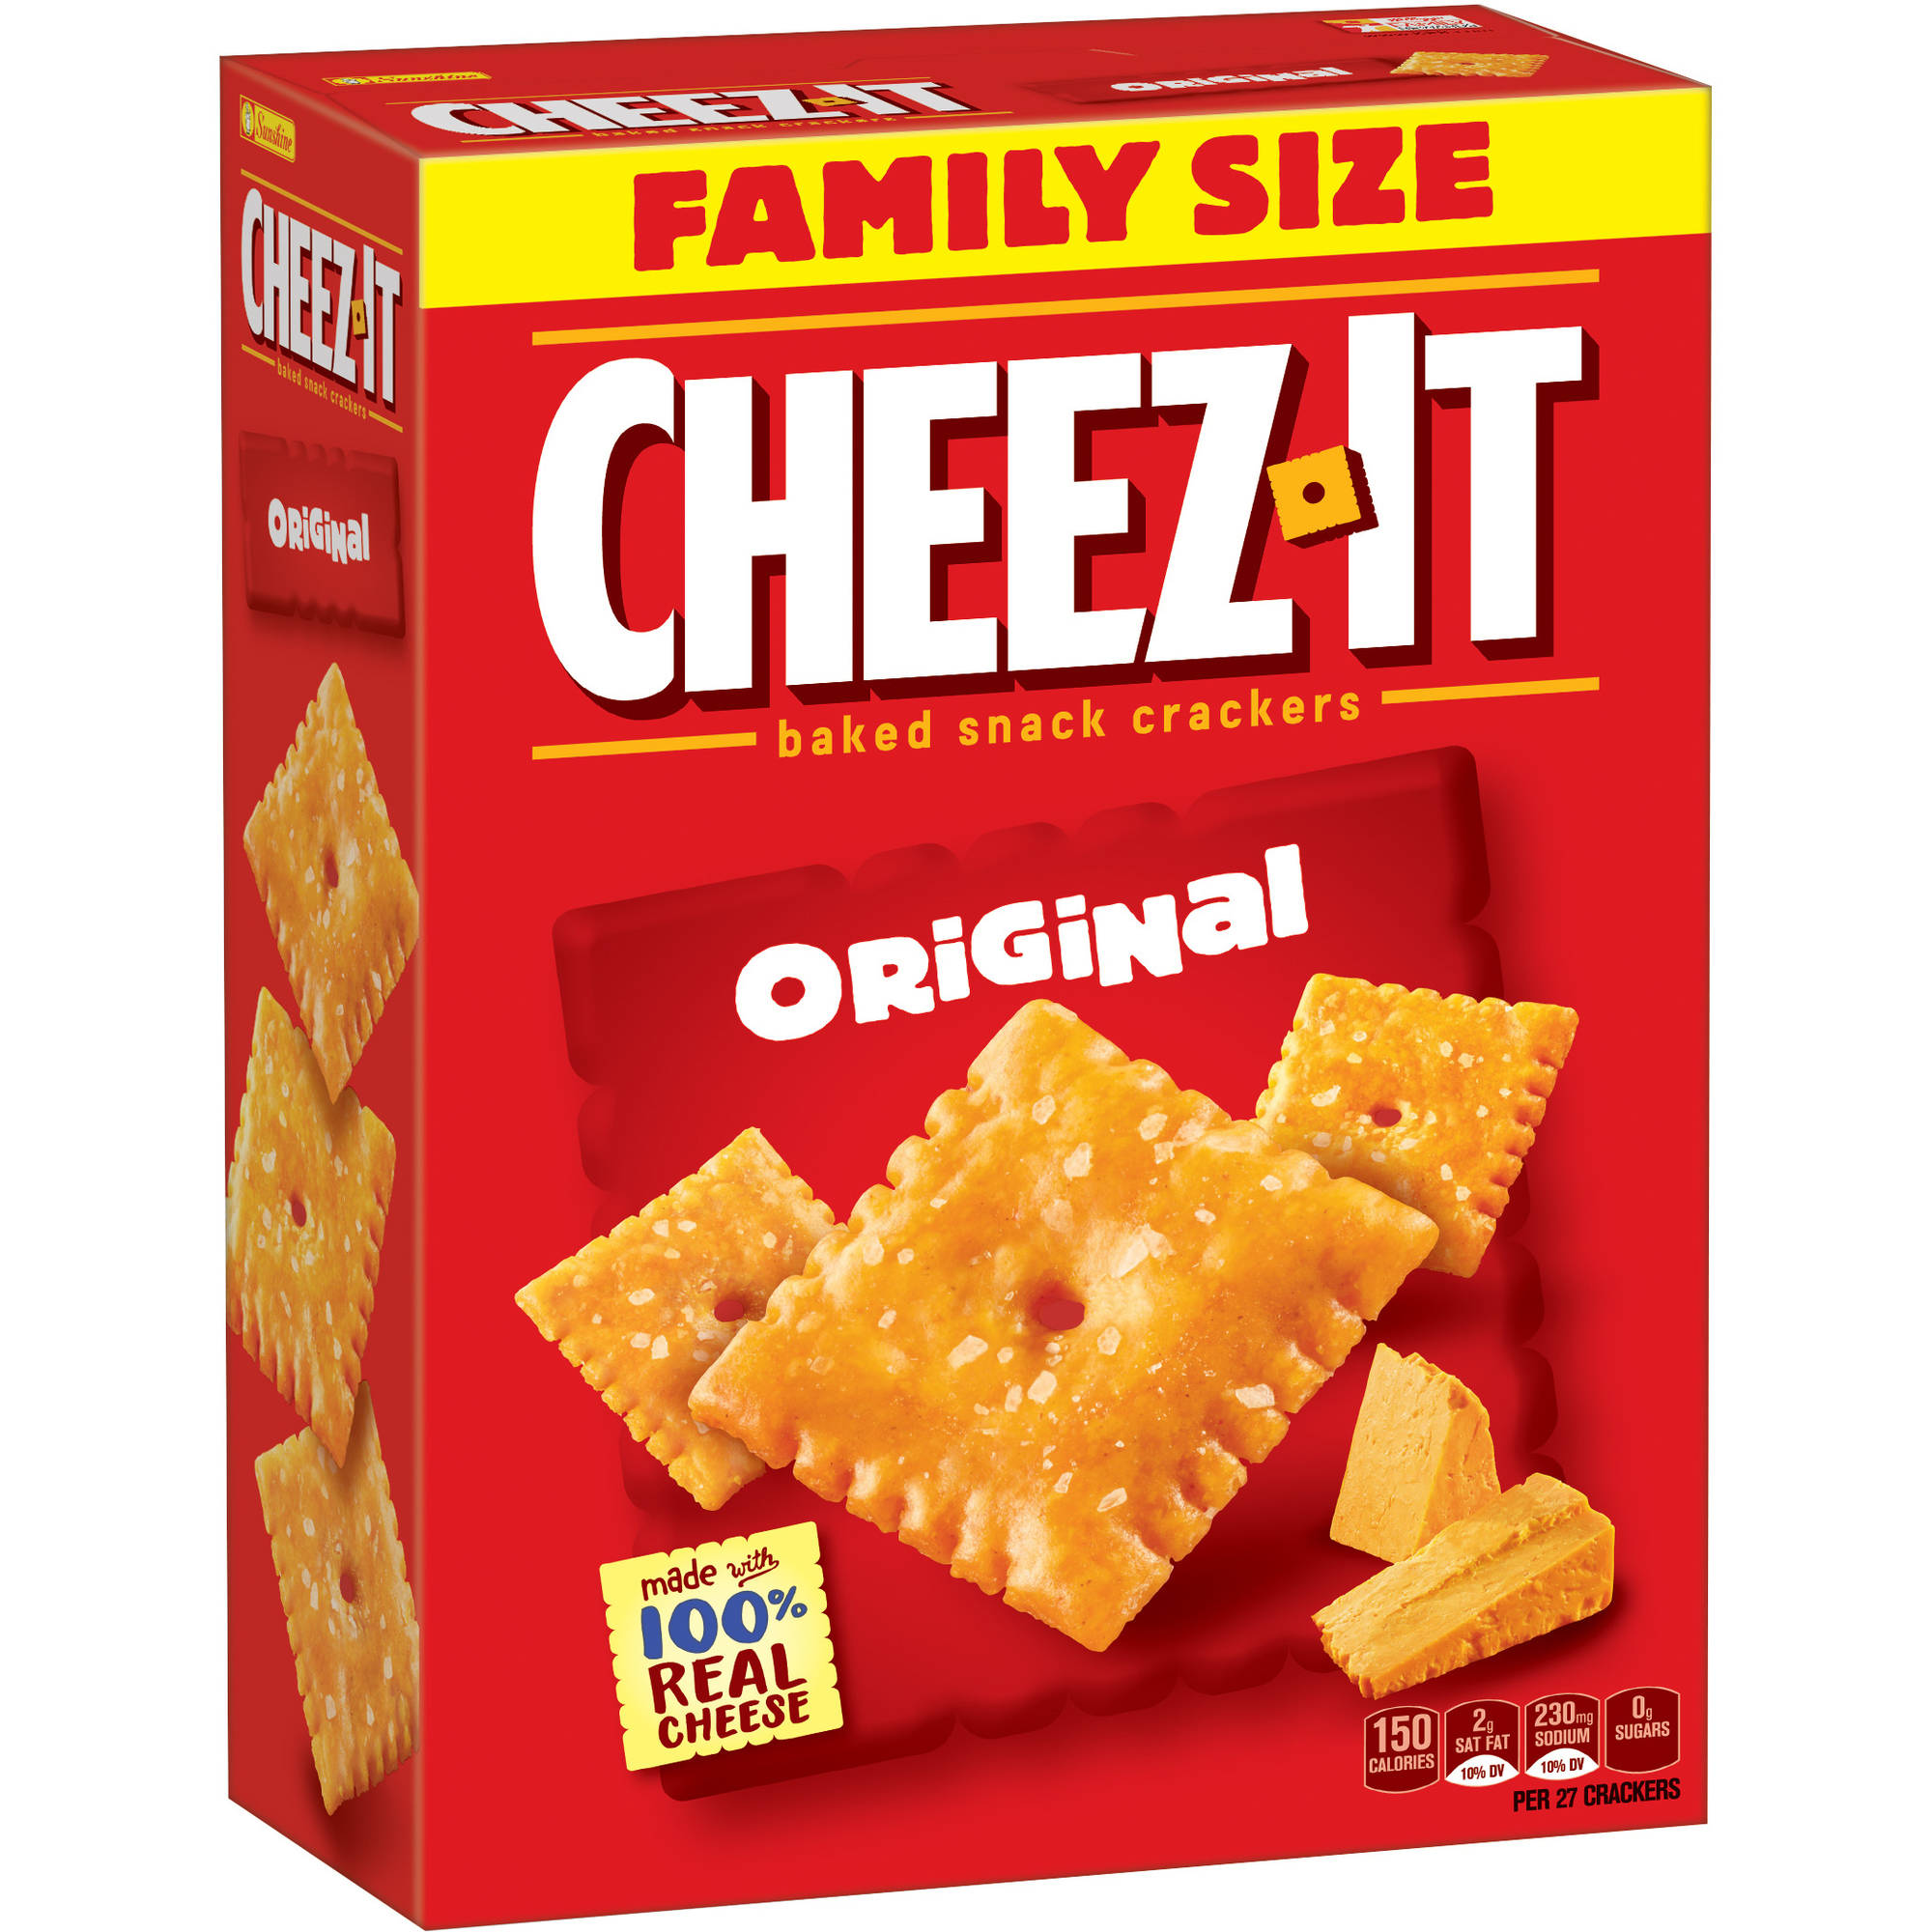 Cheez-It Original Baked Snack Crackers, 21 oz